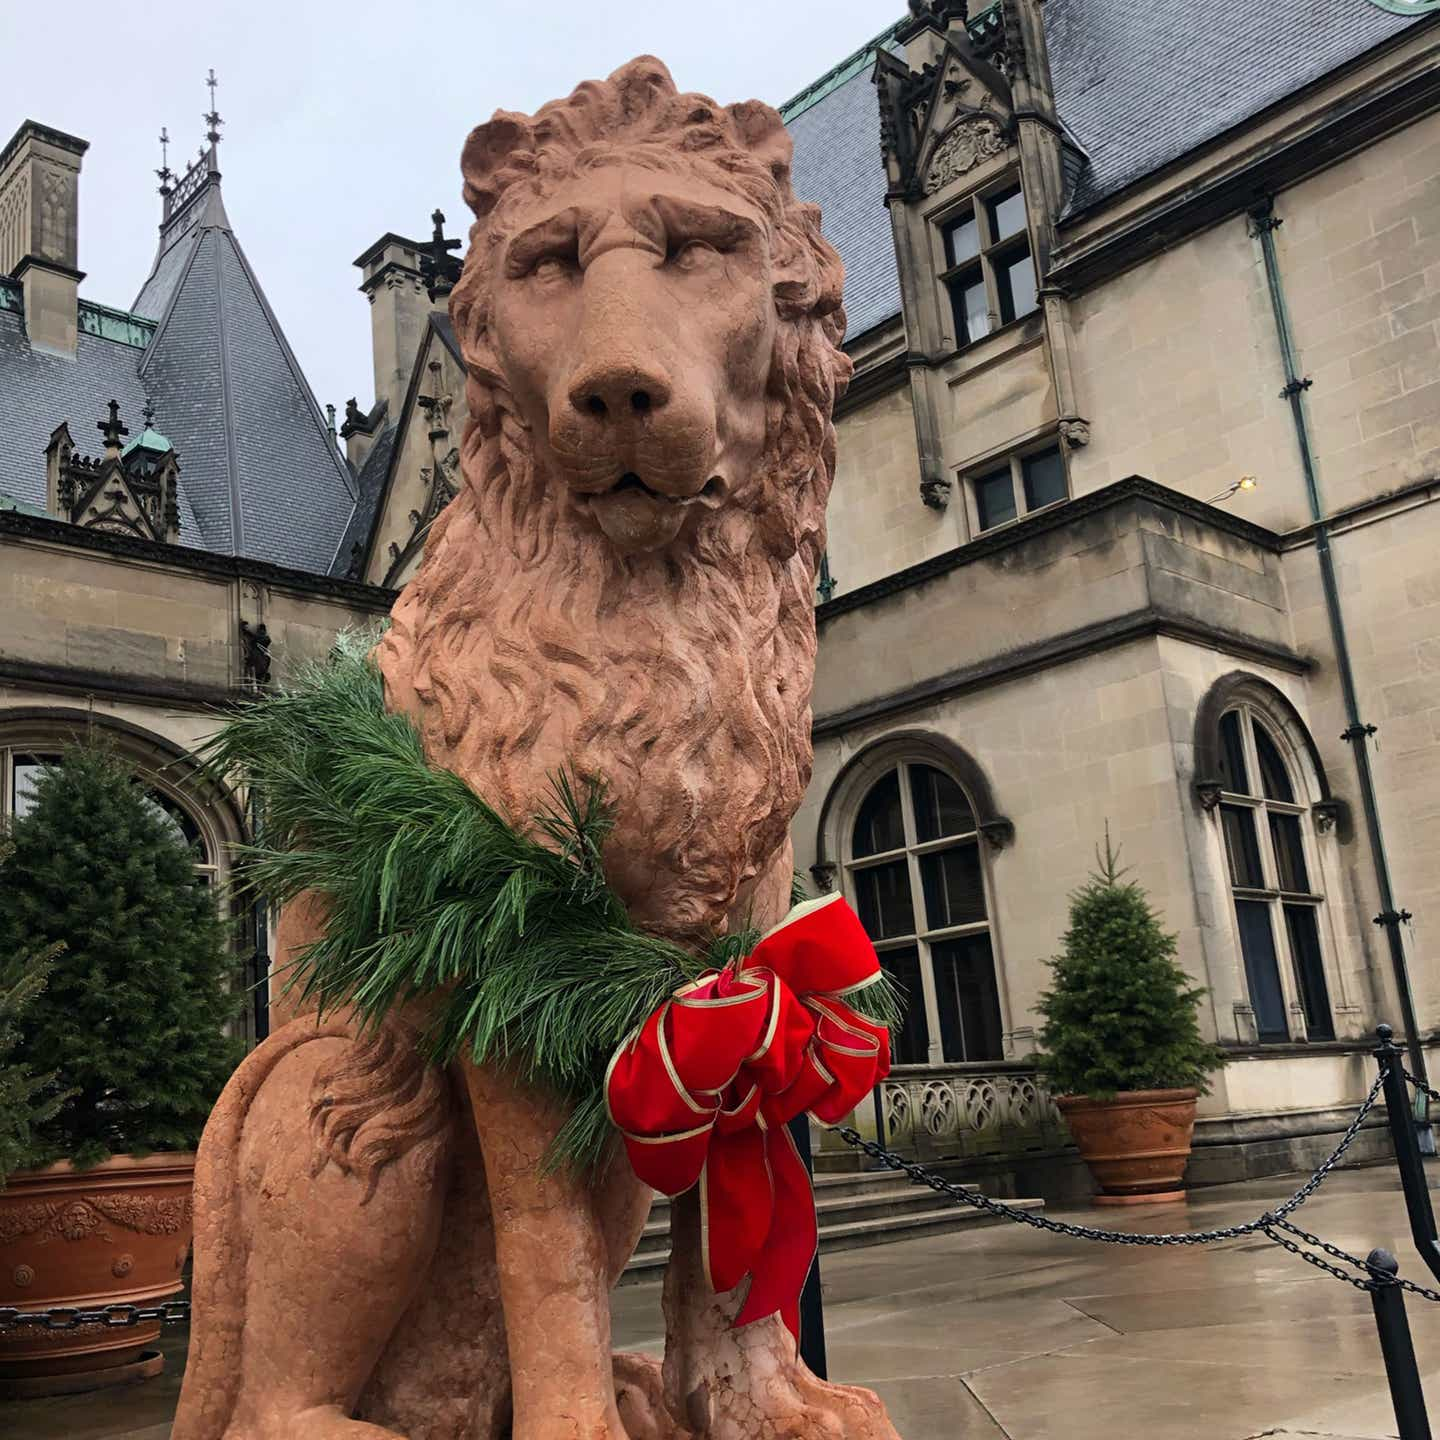 The exterior of the Biltmore Estate with a Lion statue decorated with a Christmas wreath and red bows.